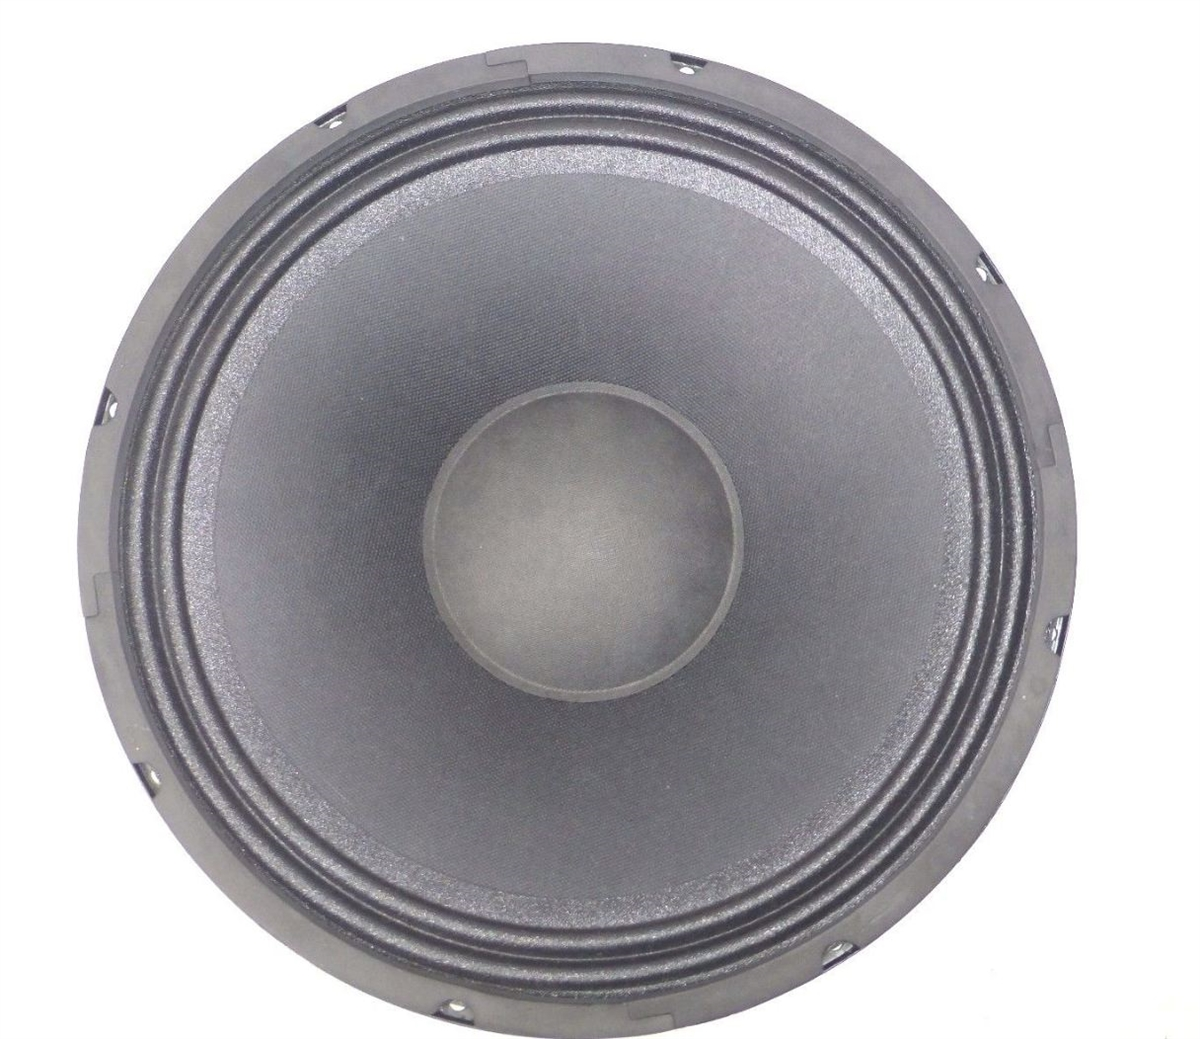 Replacement Speaker JBL M112-8 Woofer For JRX 112 Series Cabinets, 12